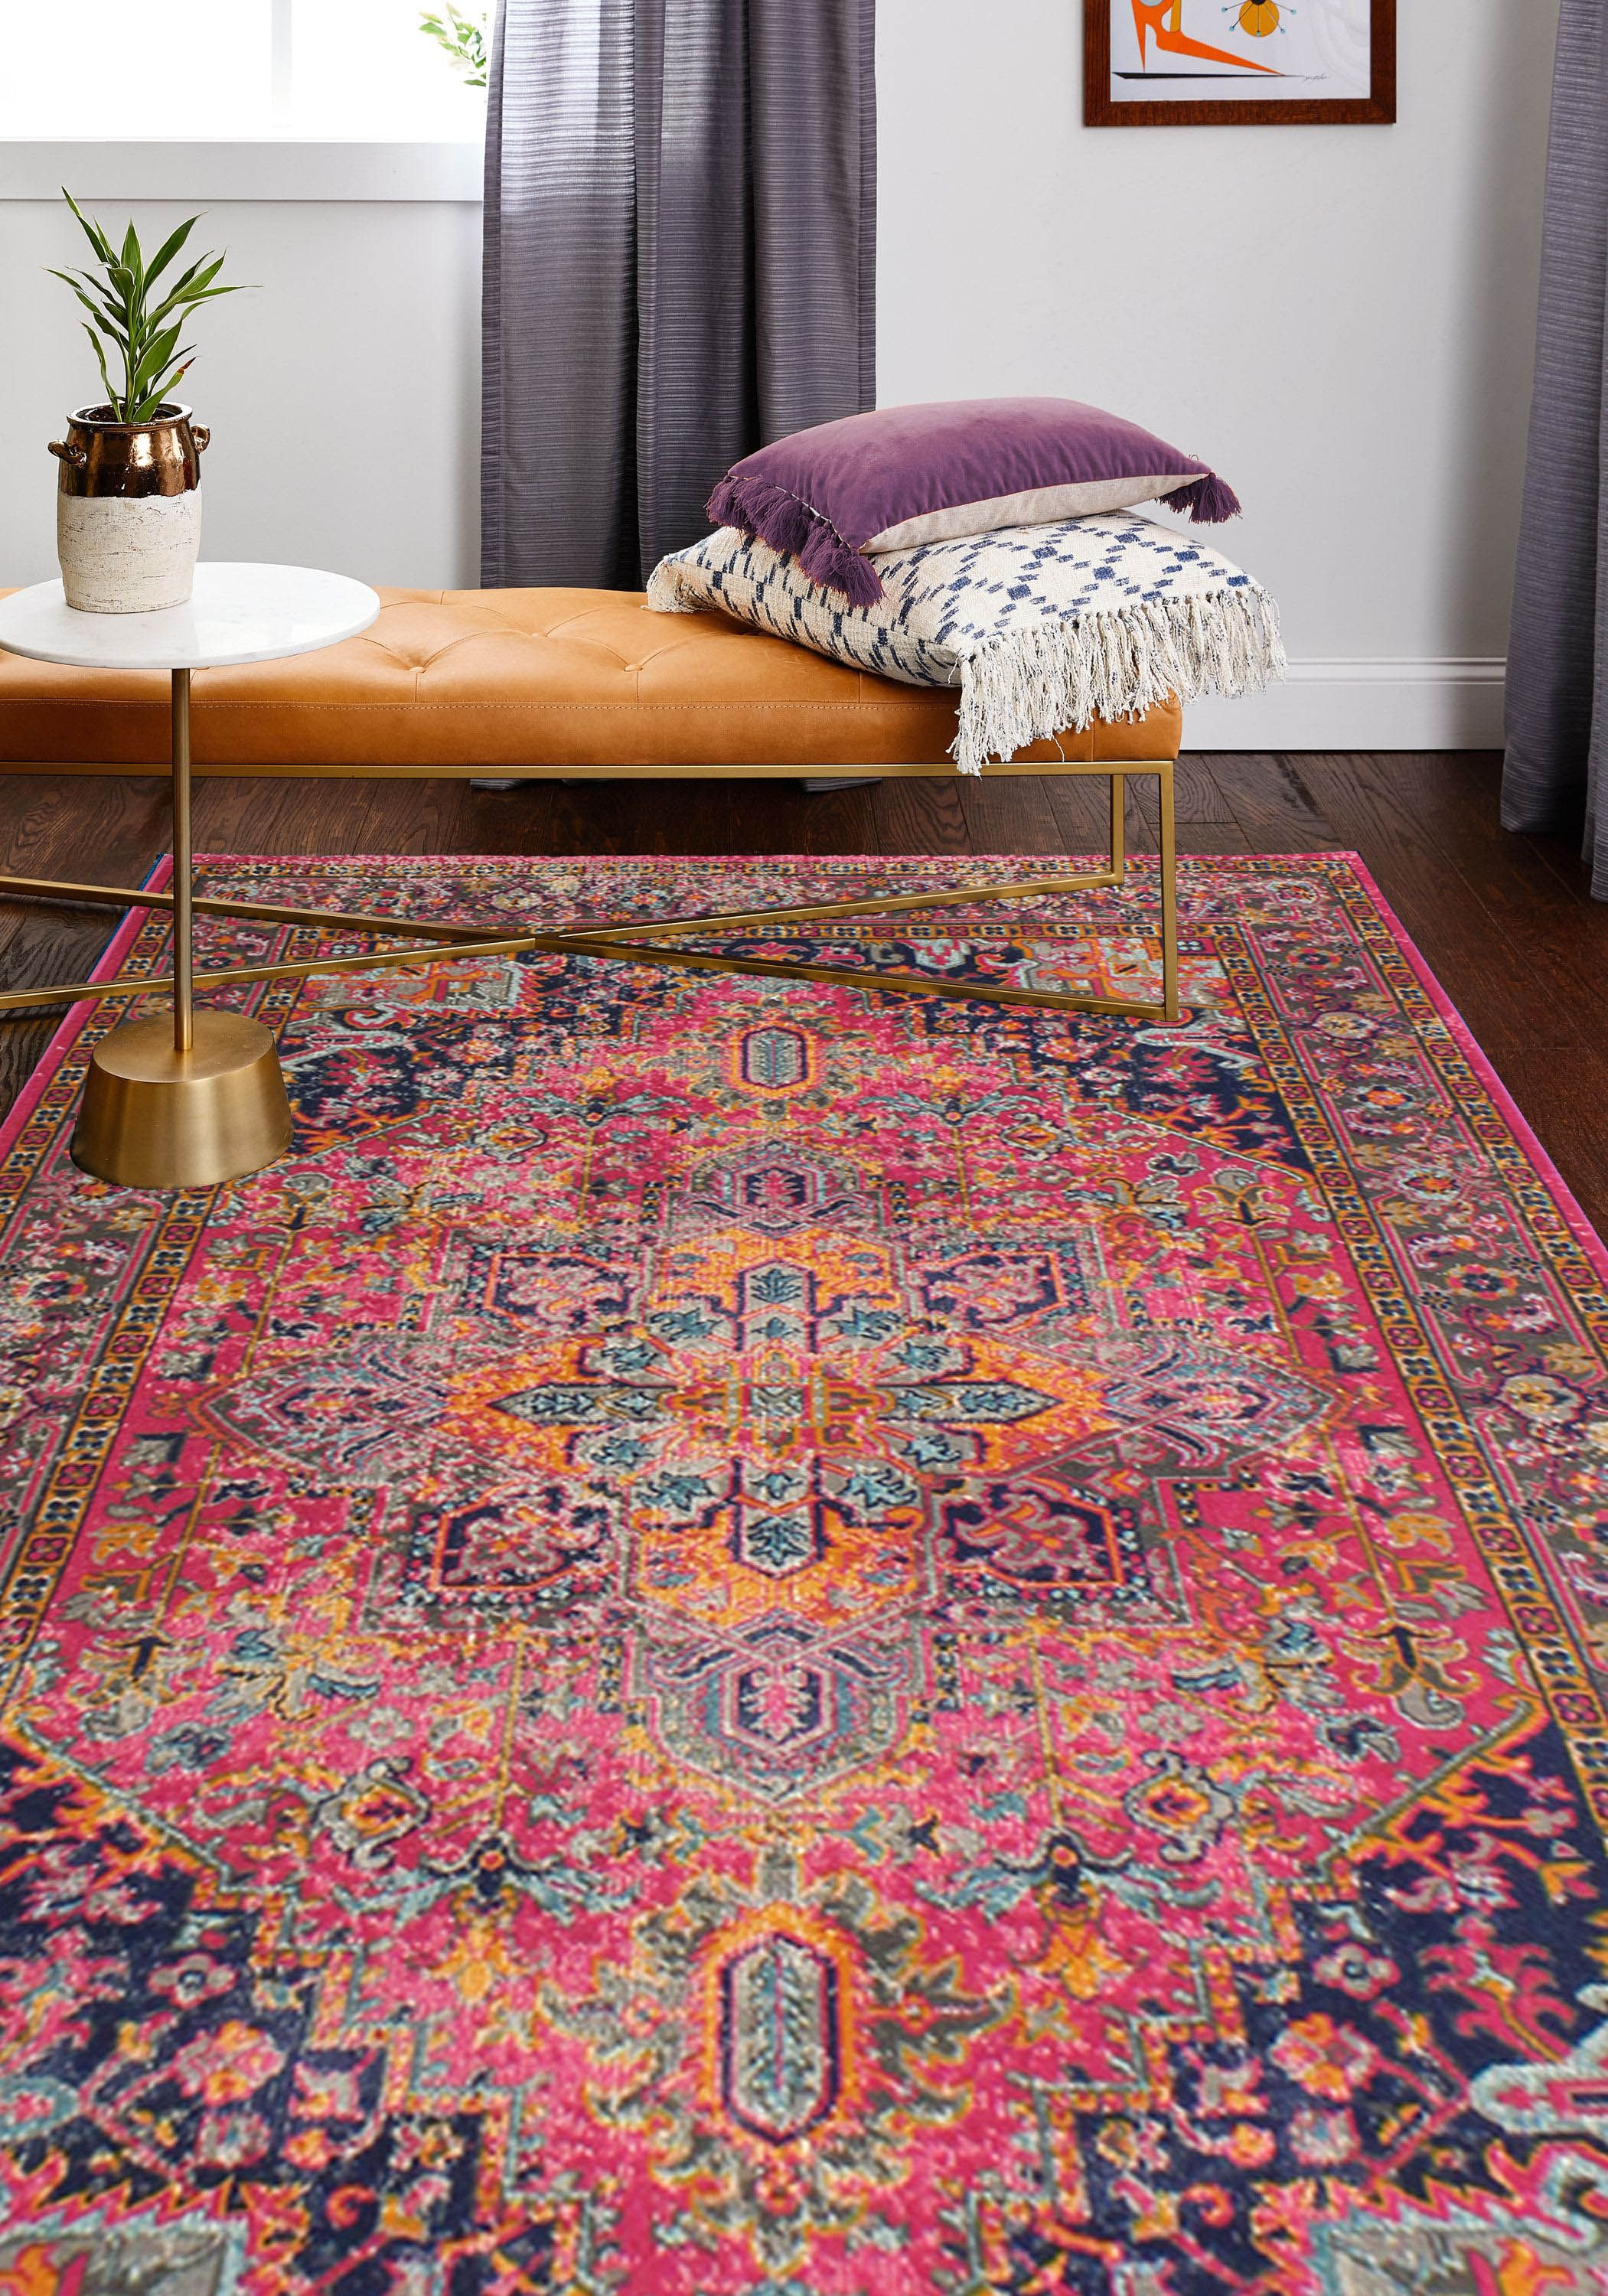 Motivating Bohemian Decorating Ideas For Living Room Pink Blue